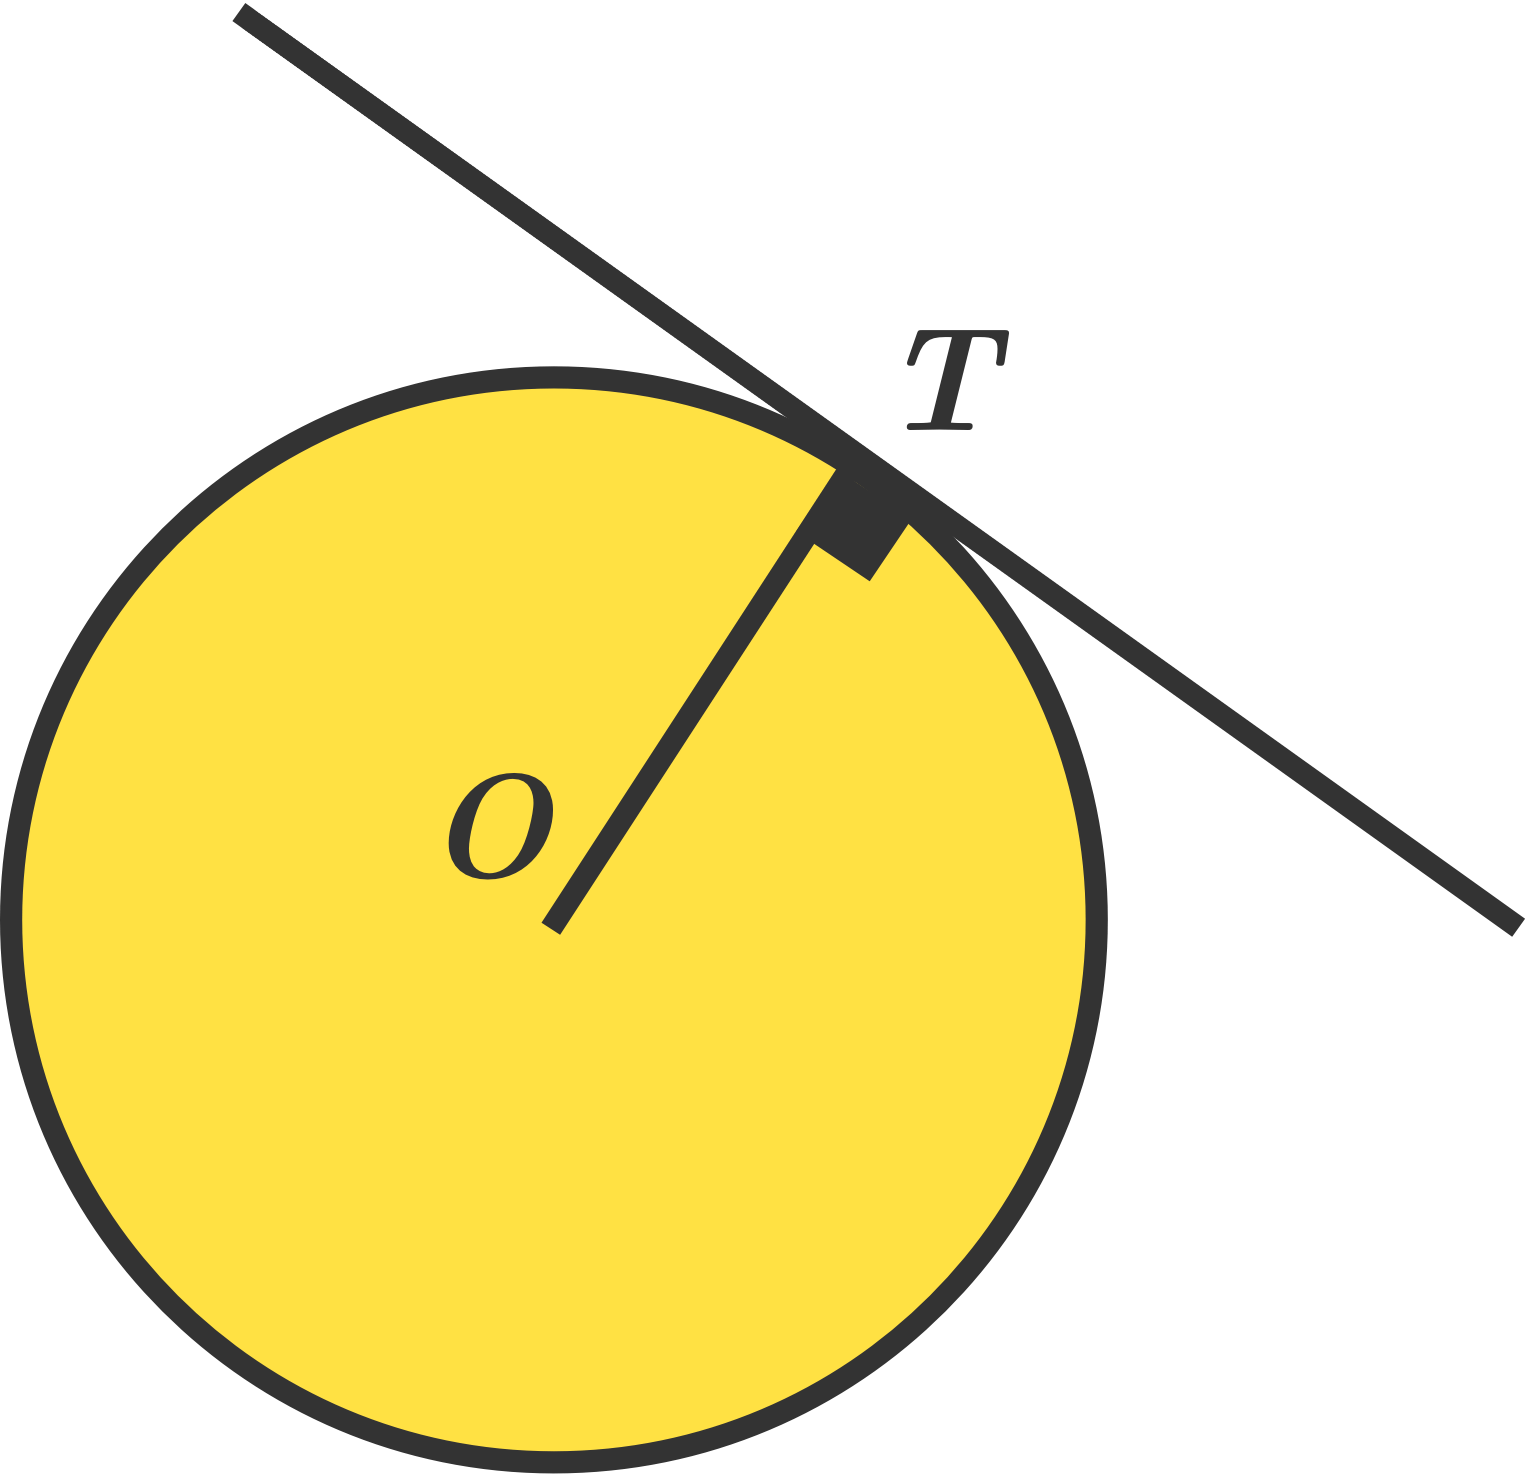 Equation Of A Circle With Radius And Tangent